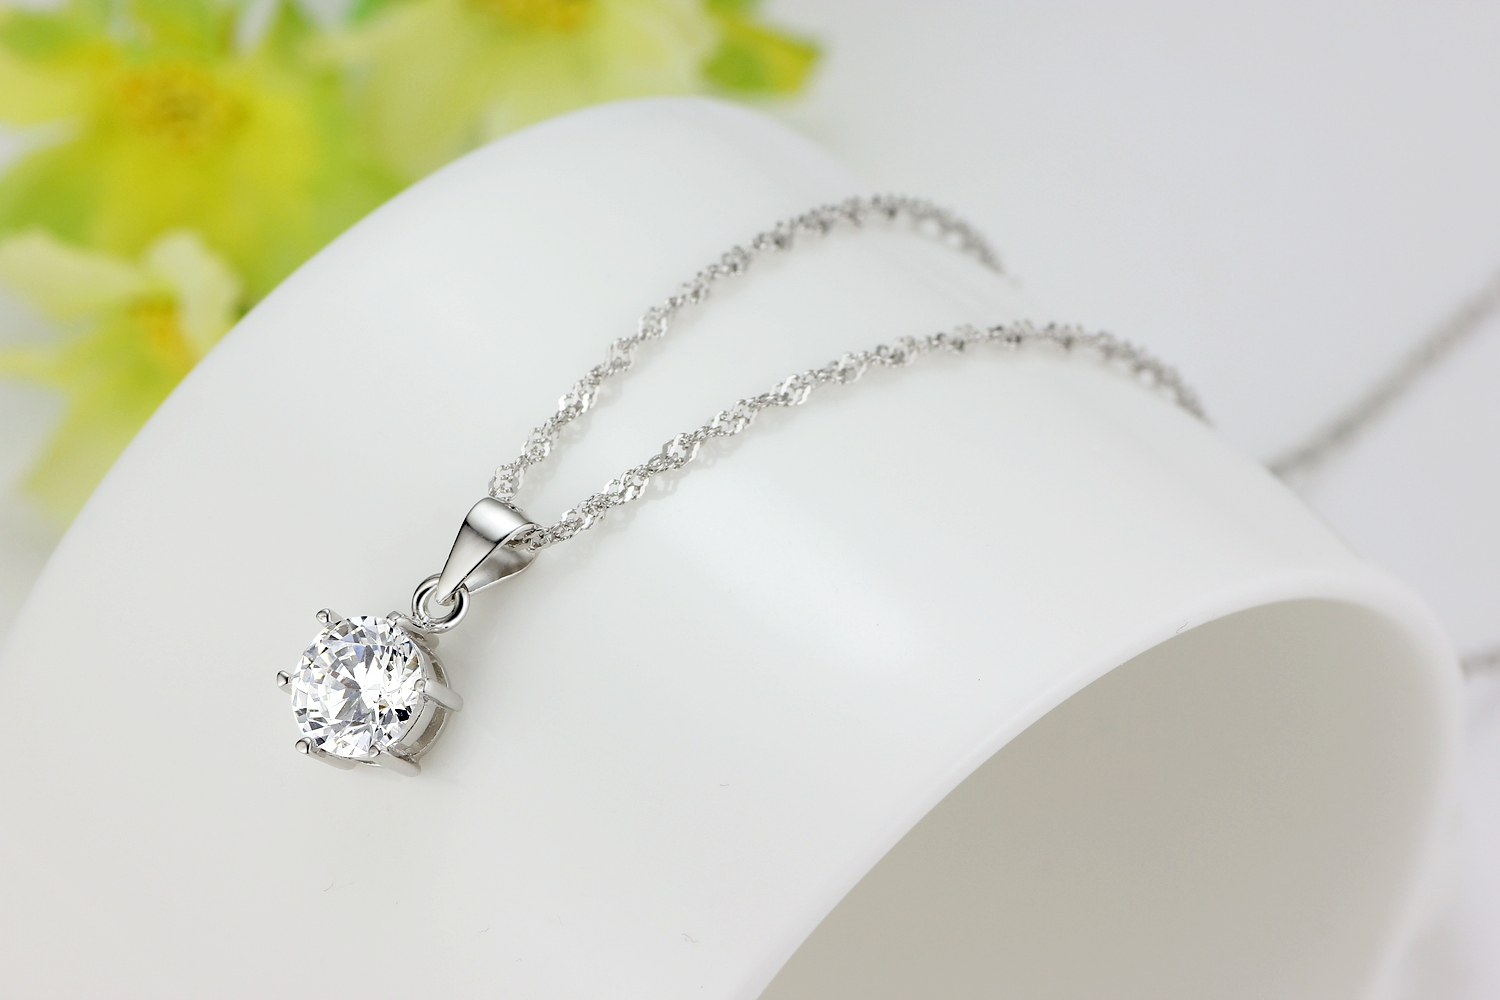 Sterling 925 silver love pendant necklace jewelry set with cubic sterling 925 silver love pendant necklace jewelry set with cubic zirconia cz gemstone diamonds pendant and aloadofball Image collections